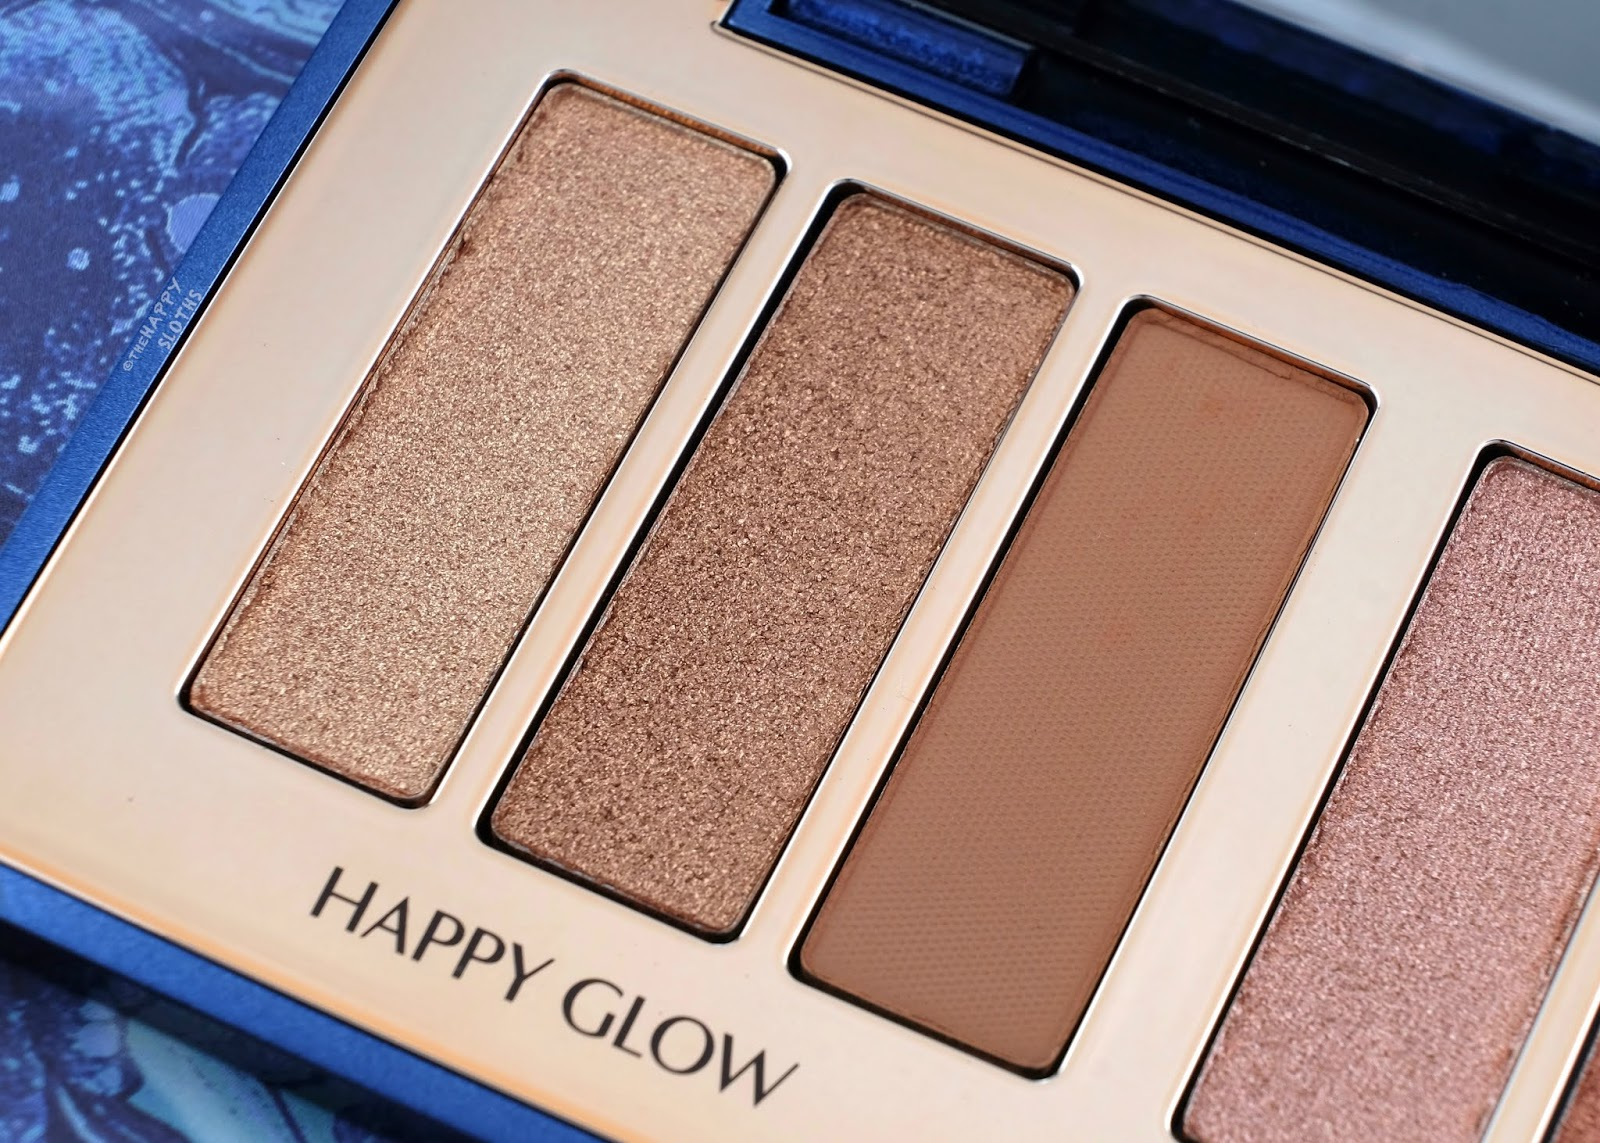 Charlotte Tilbury | Starry Eyes To Hypnotise Eyeshadow Palette | Happy Glow: Review and Swatches